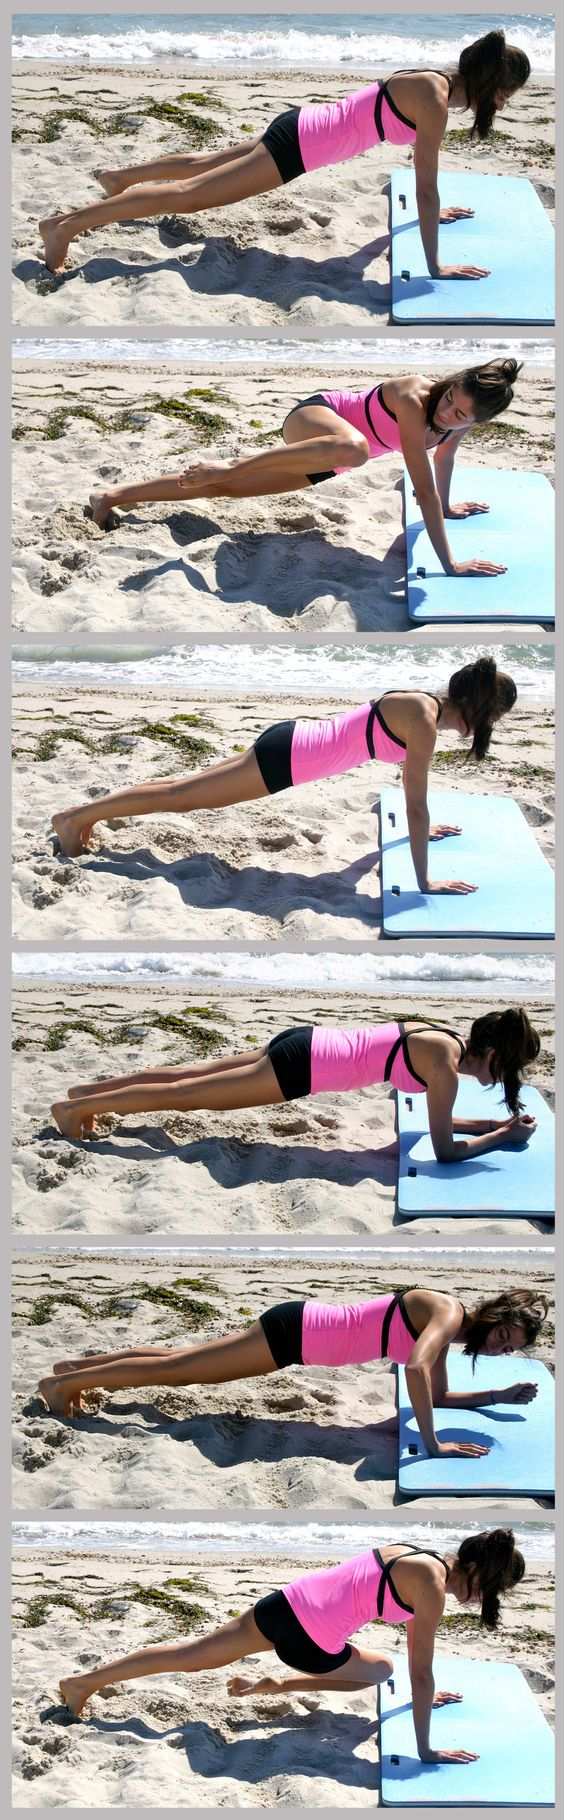 FEEL THE BURN! Plank Workout - Do each of the 6 moves for 20 seconds. Repeat entire 2-minute circuit 3 times, taking a 30-second break in between each round.